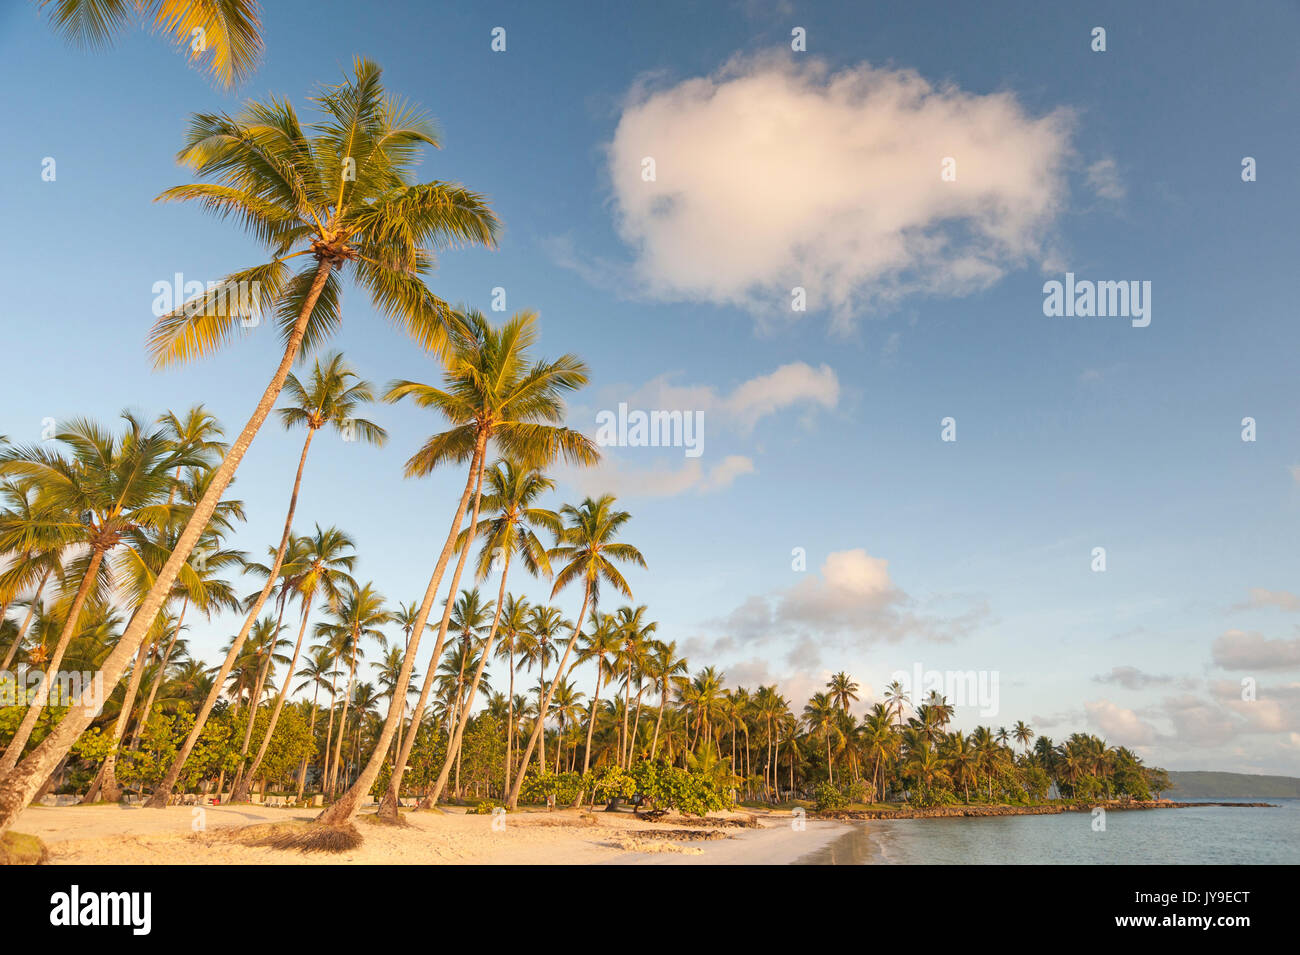 Dream beach with coconut palm trees in the Dominican Republic - Stock Image